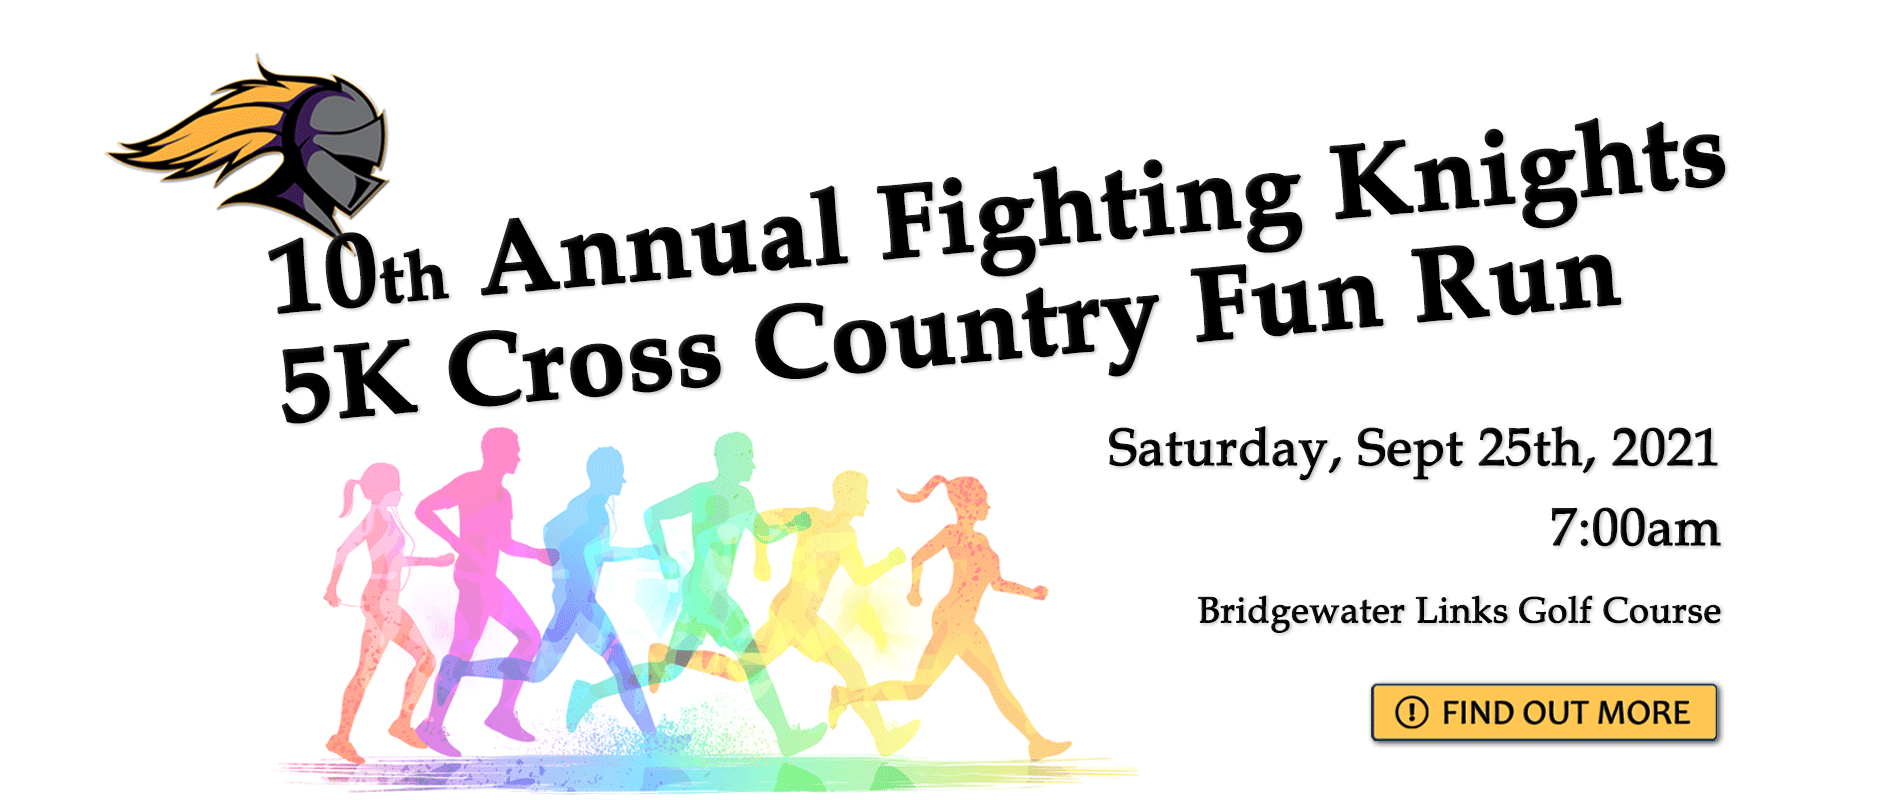 banner ad for Cross Country Fun Run